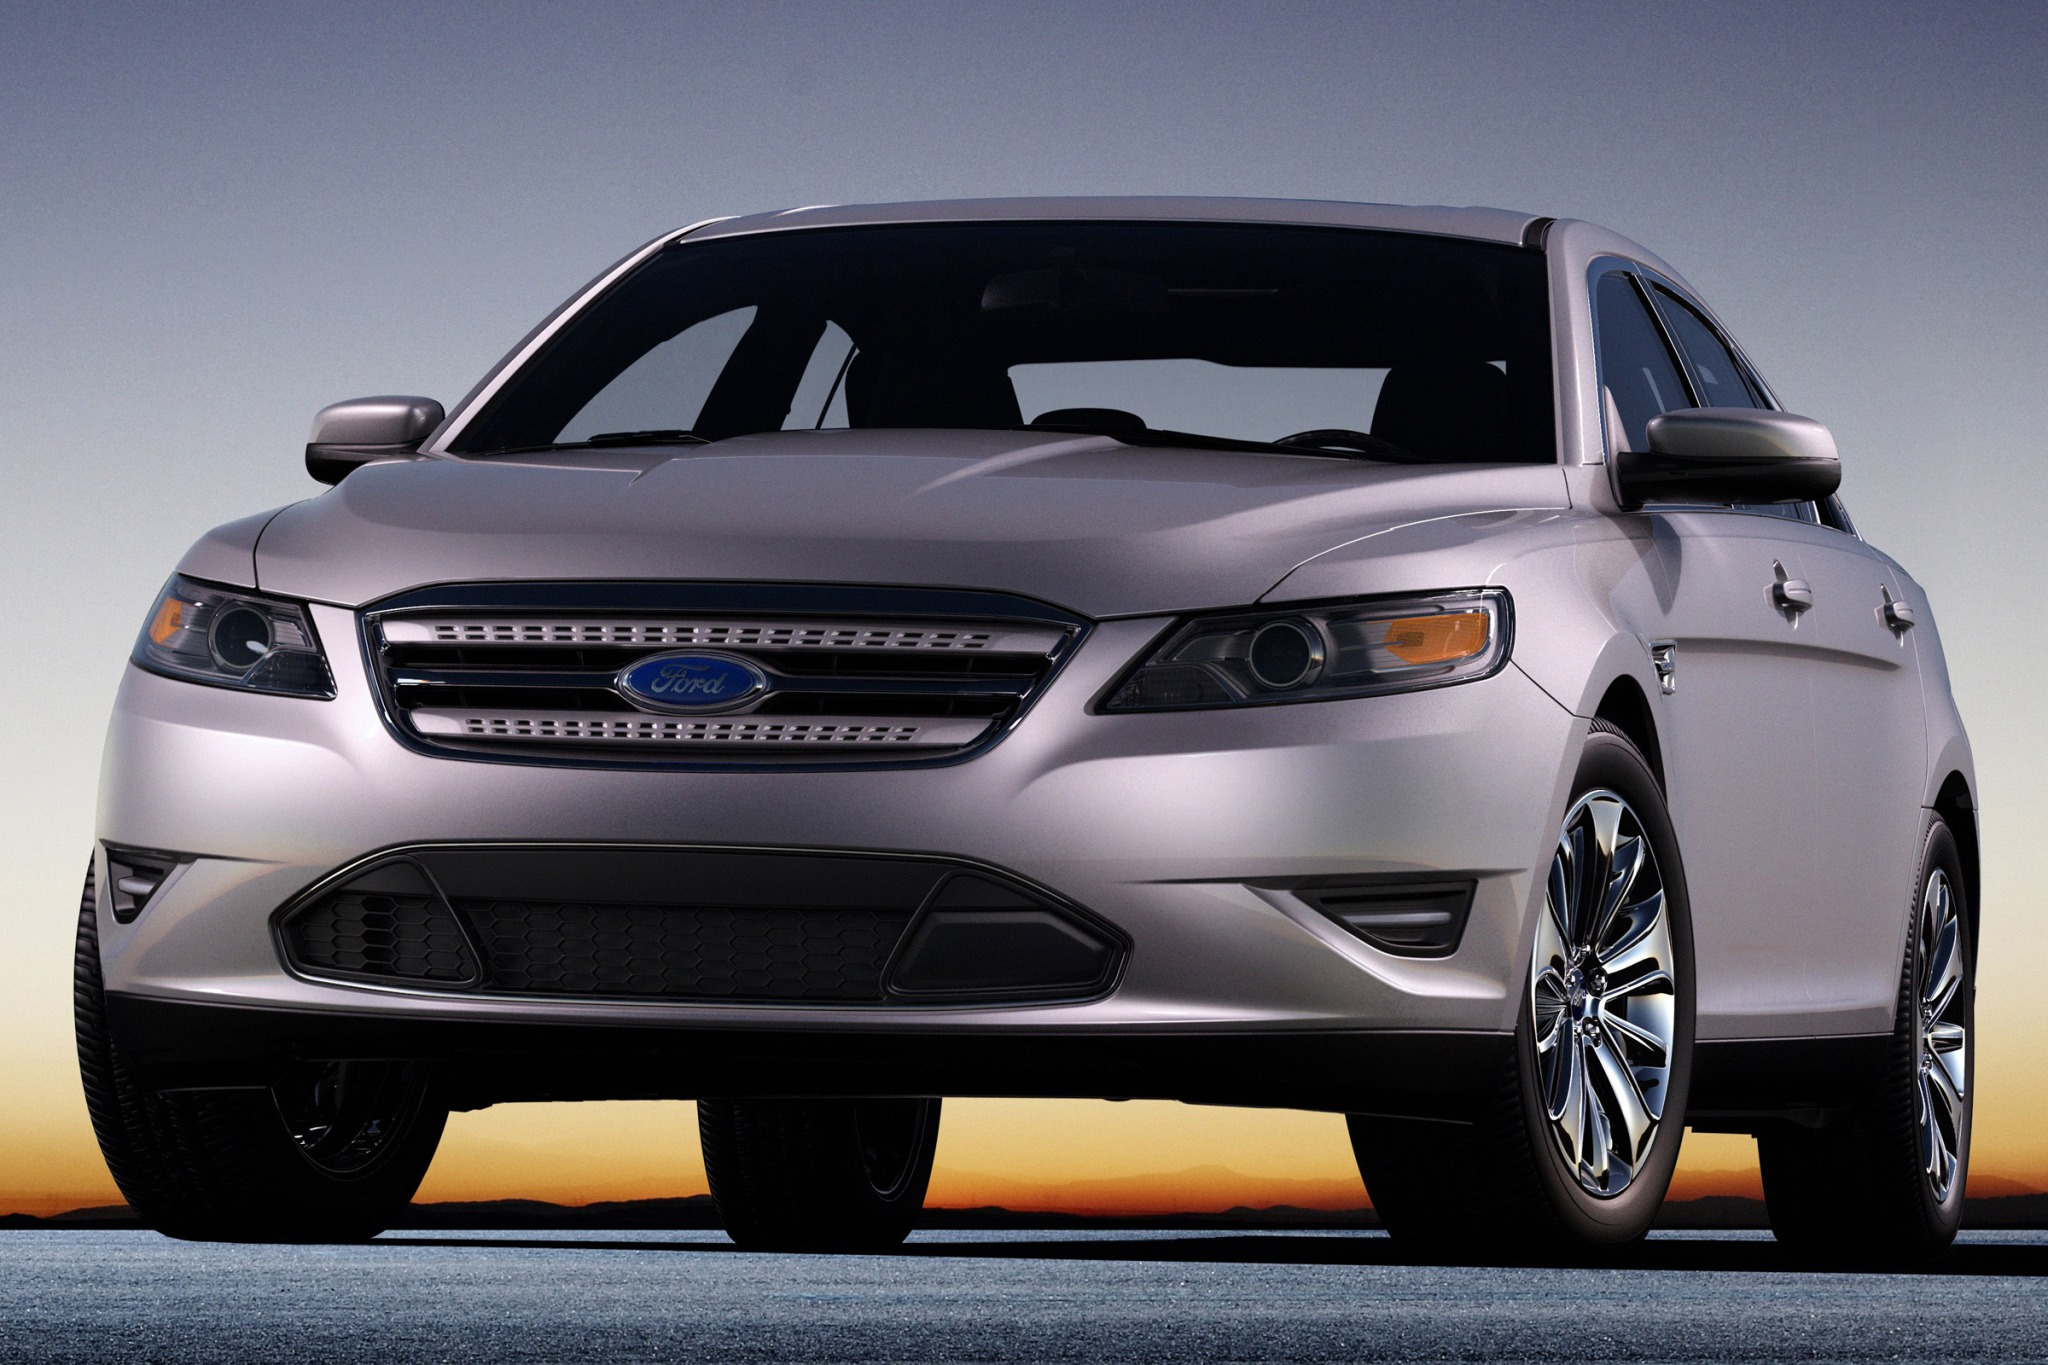 2010 Ford Taurus Limited  exterior #1